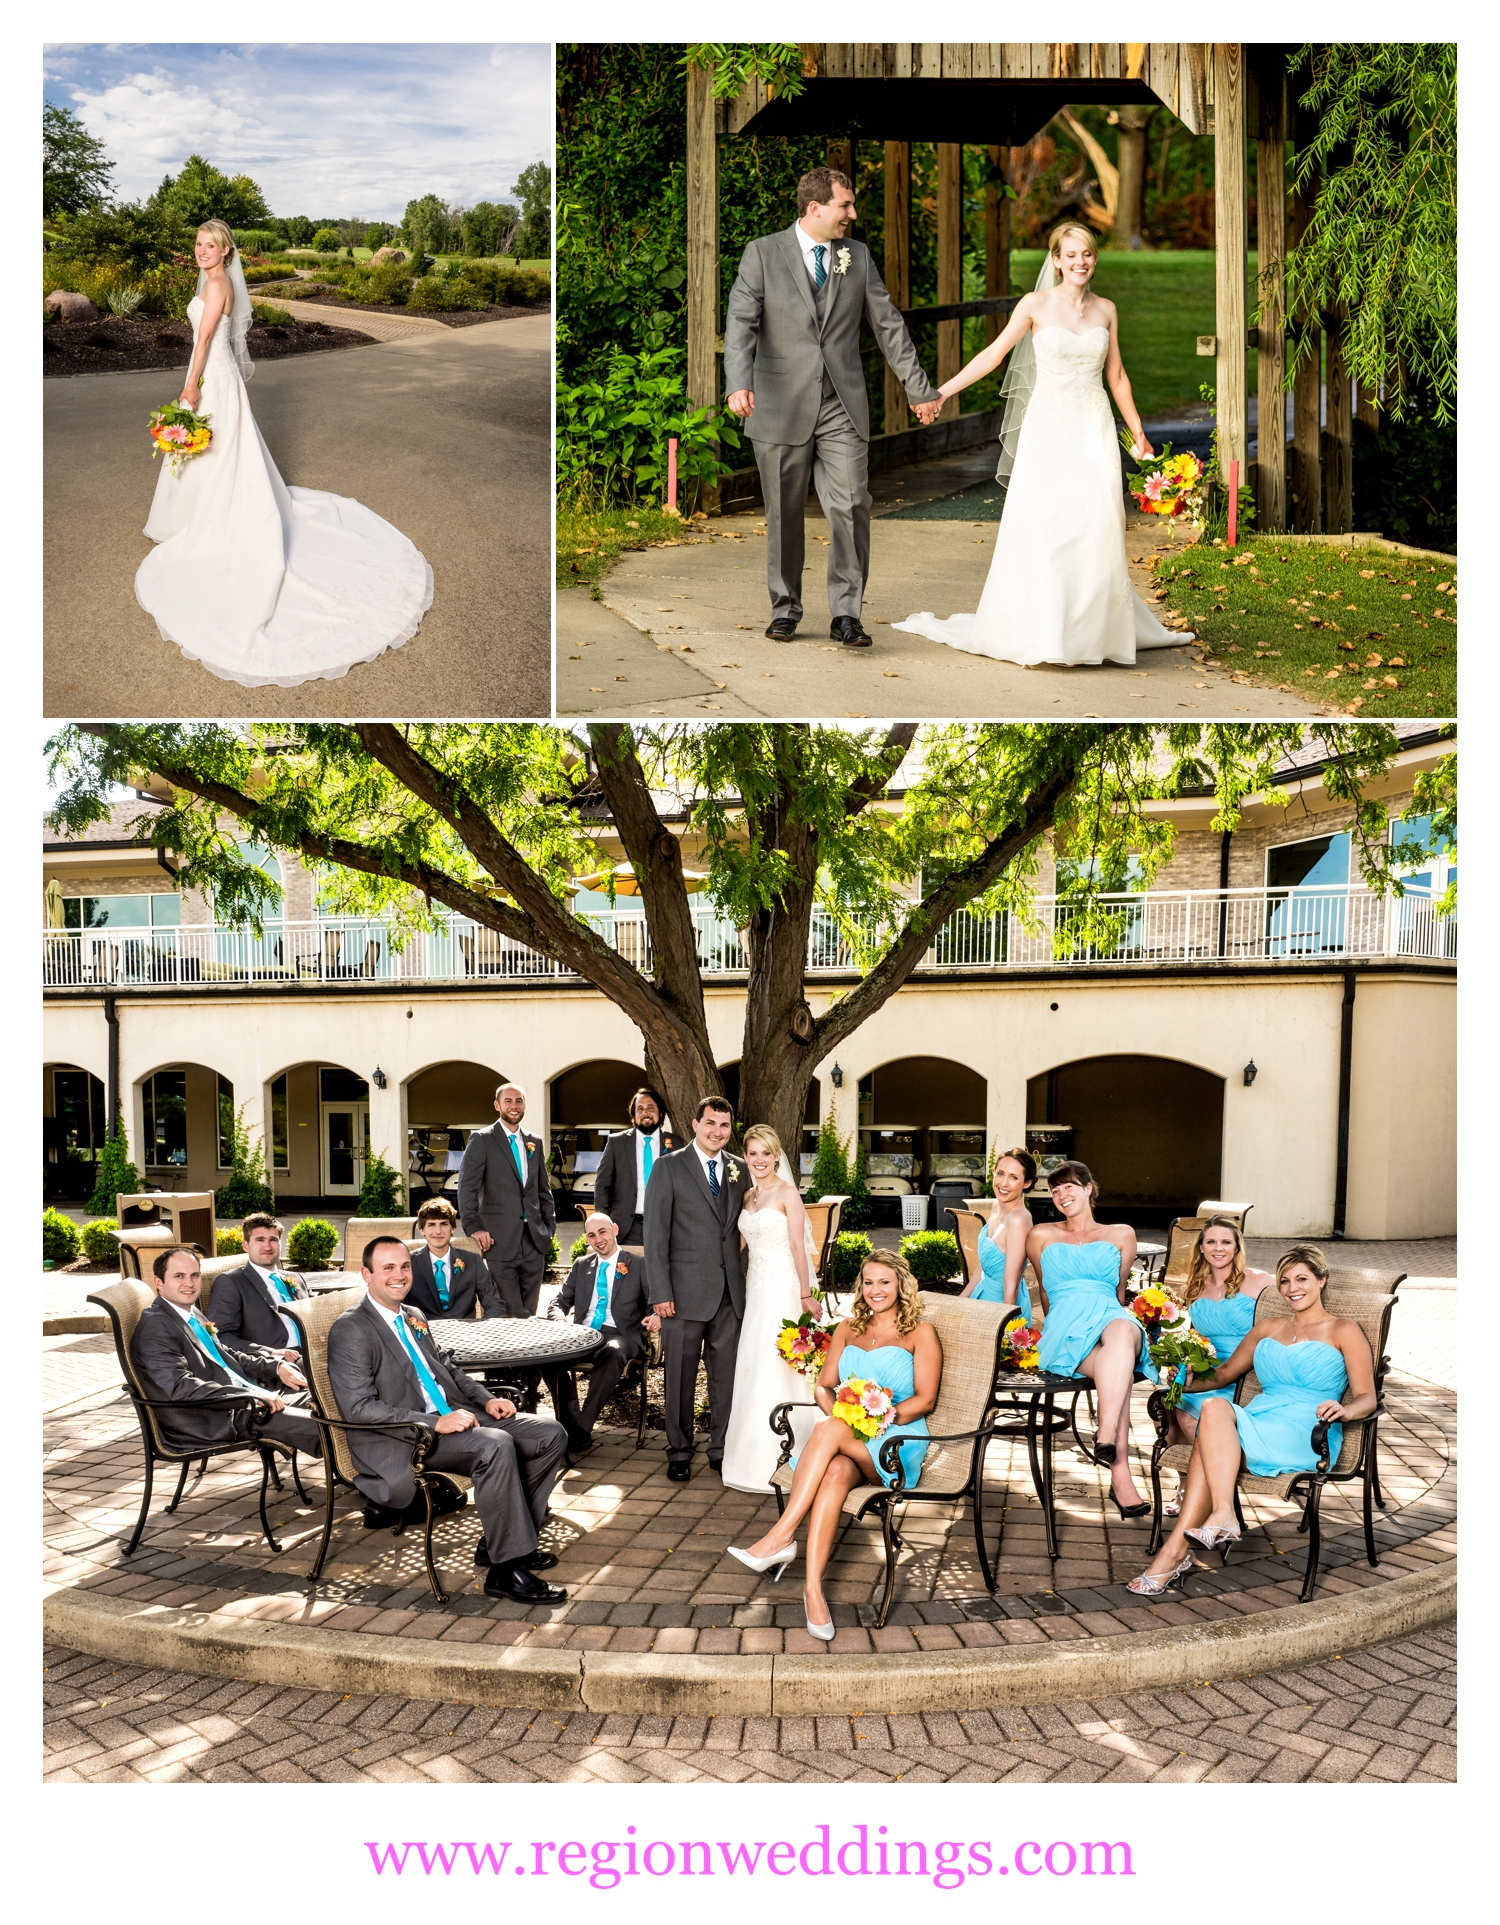 Wedding party photos at Sand Creek Country Club.